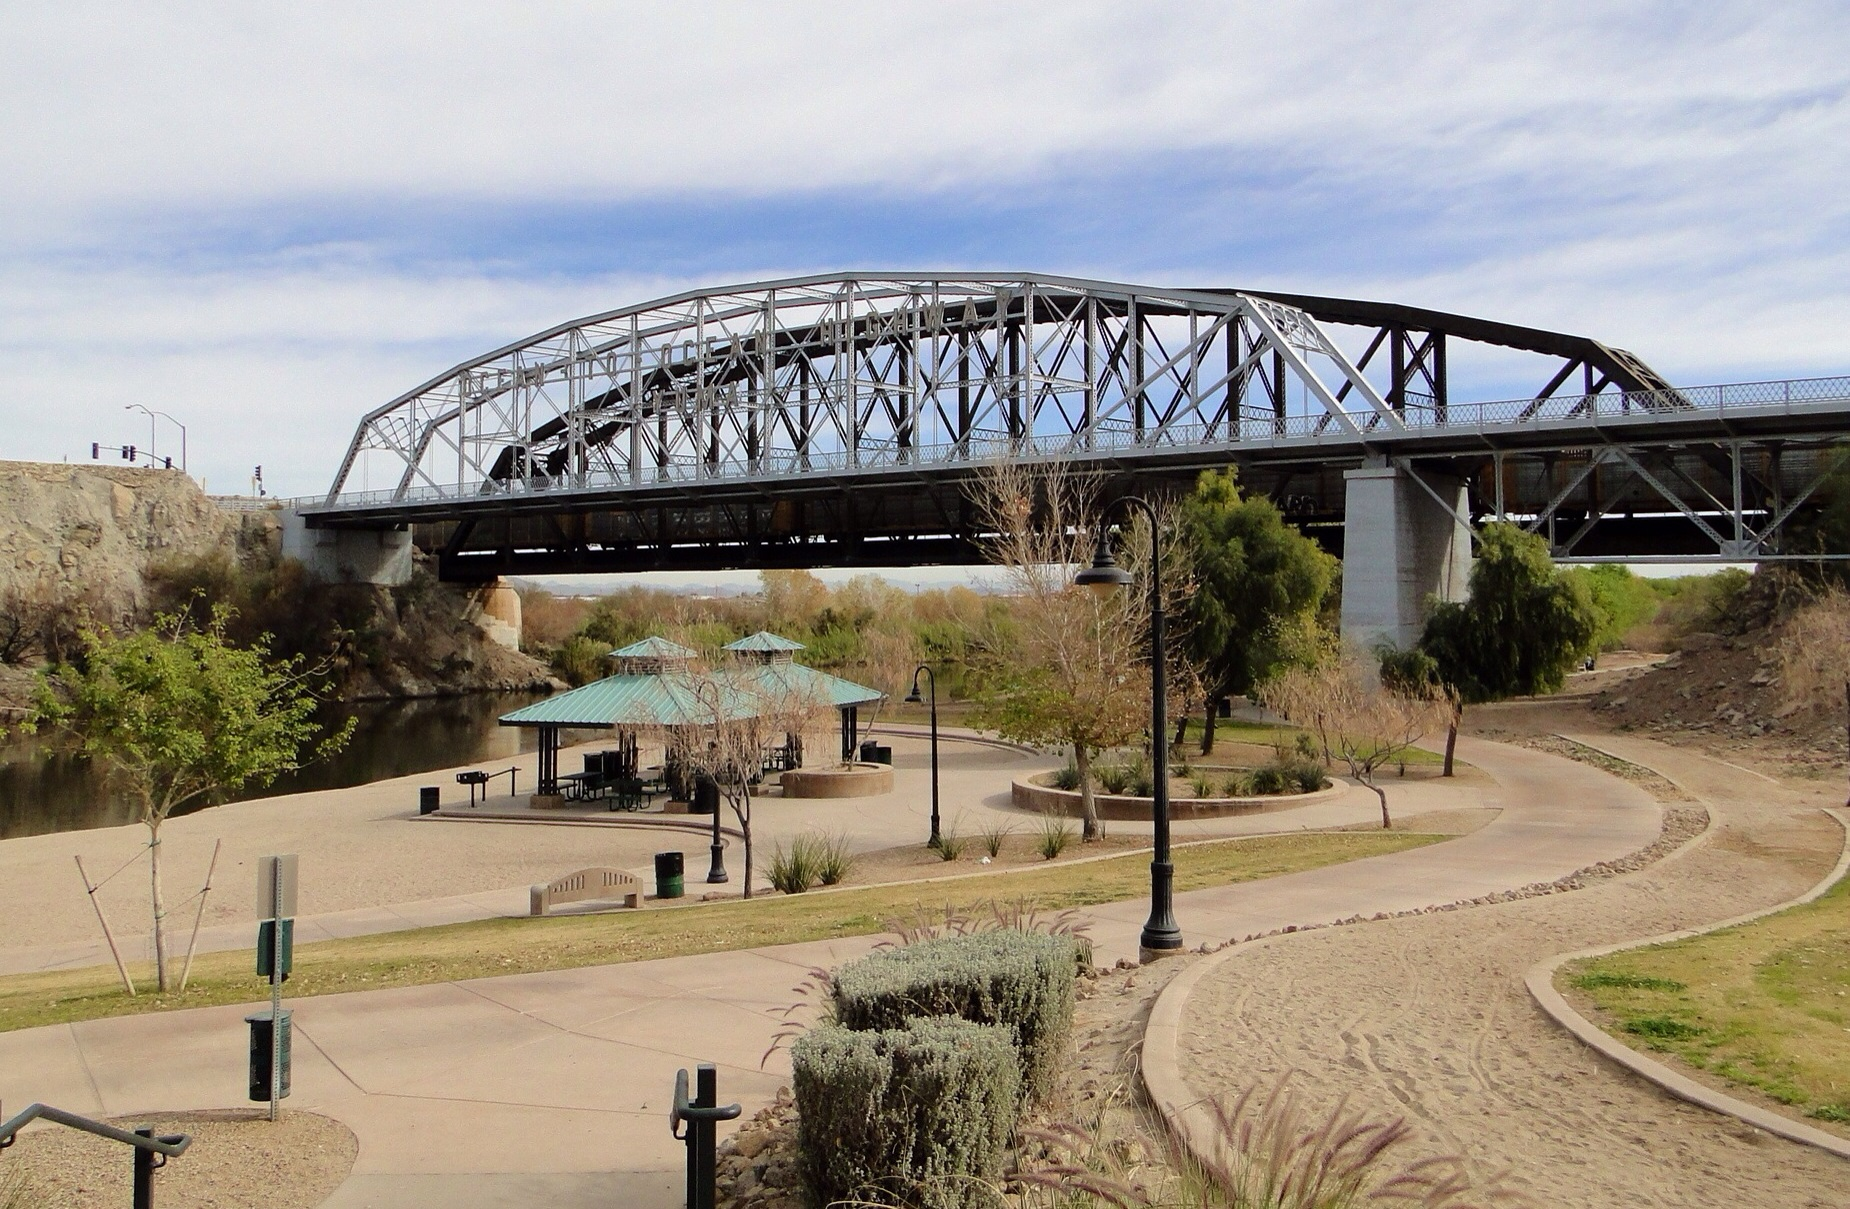 The Ocean-to-Ocean Bridge was the first bridge for autos/trucks across the Colorado River near the route of the current I-8. (Photo: Wikipedia)